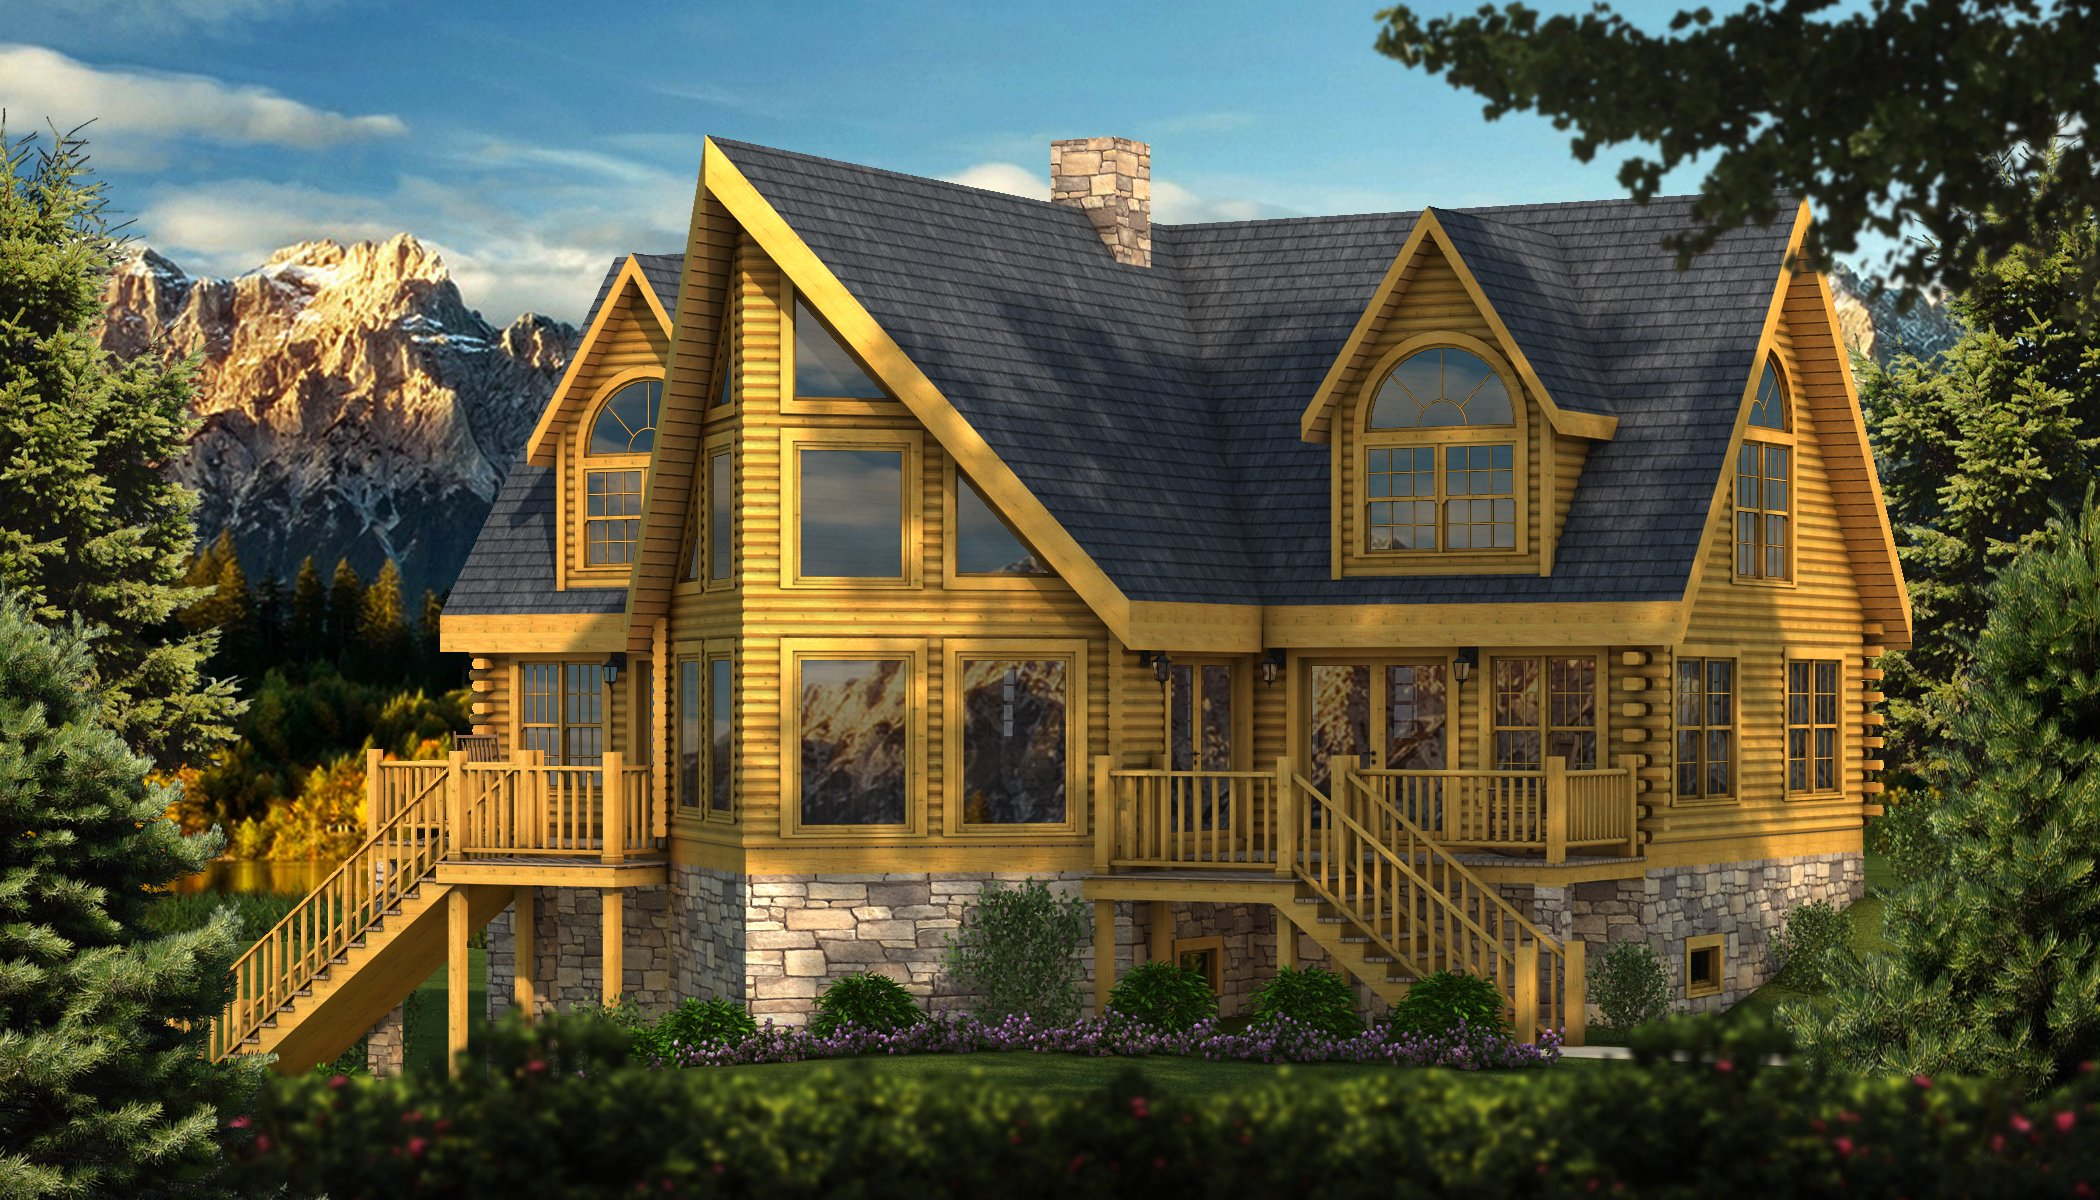 Adirondack plans information southland log homes for Adirondack home plans